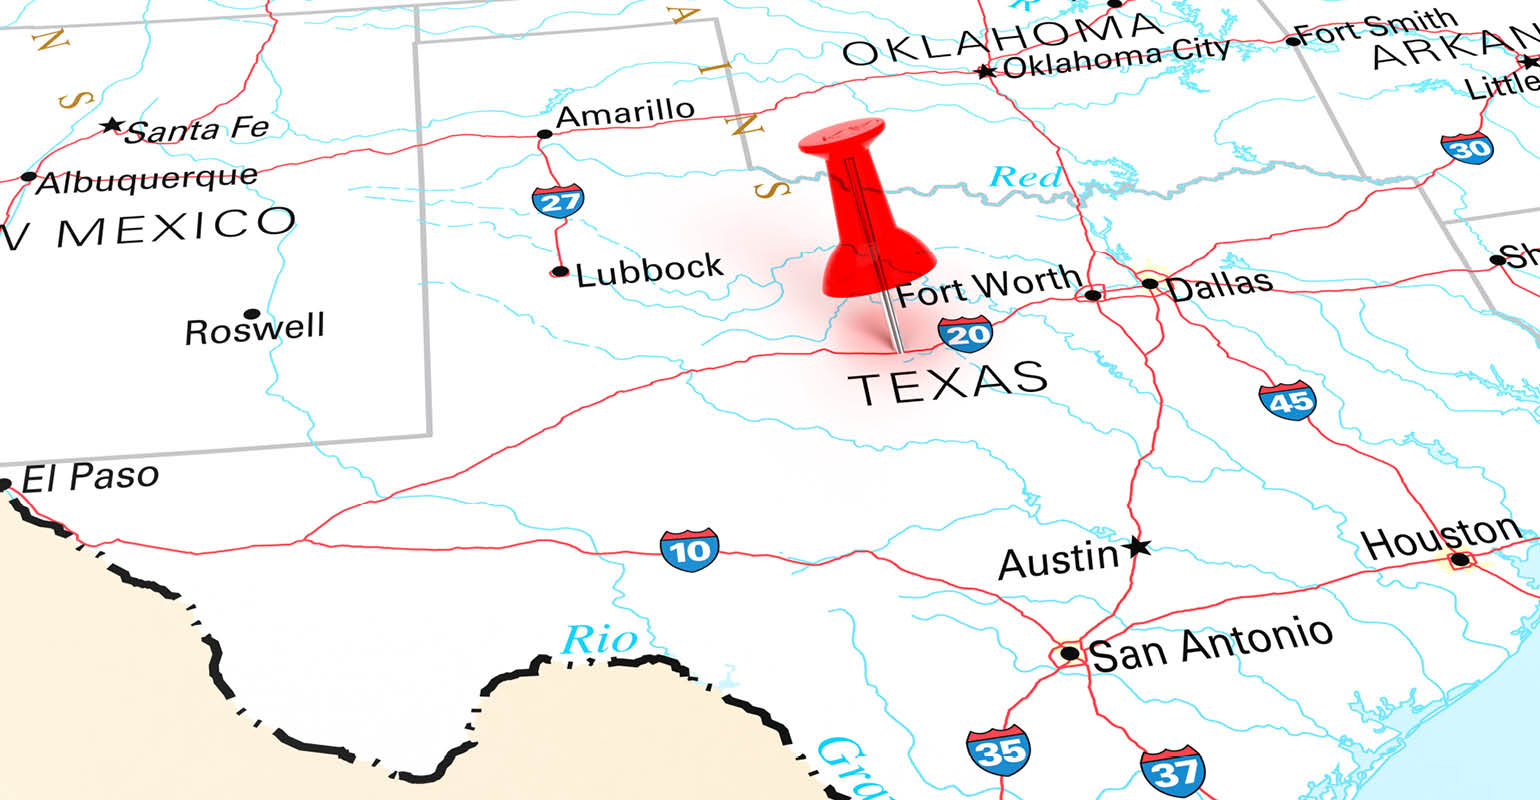 Where Is Fort Worth Texas On A Map Examining Fort Worth, Texas' 20 Year Solid Waste Management Plan